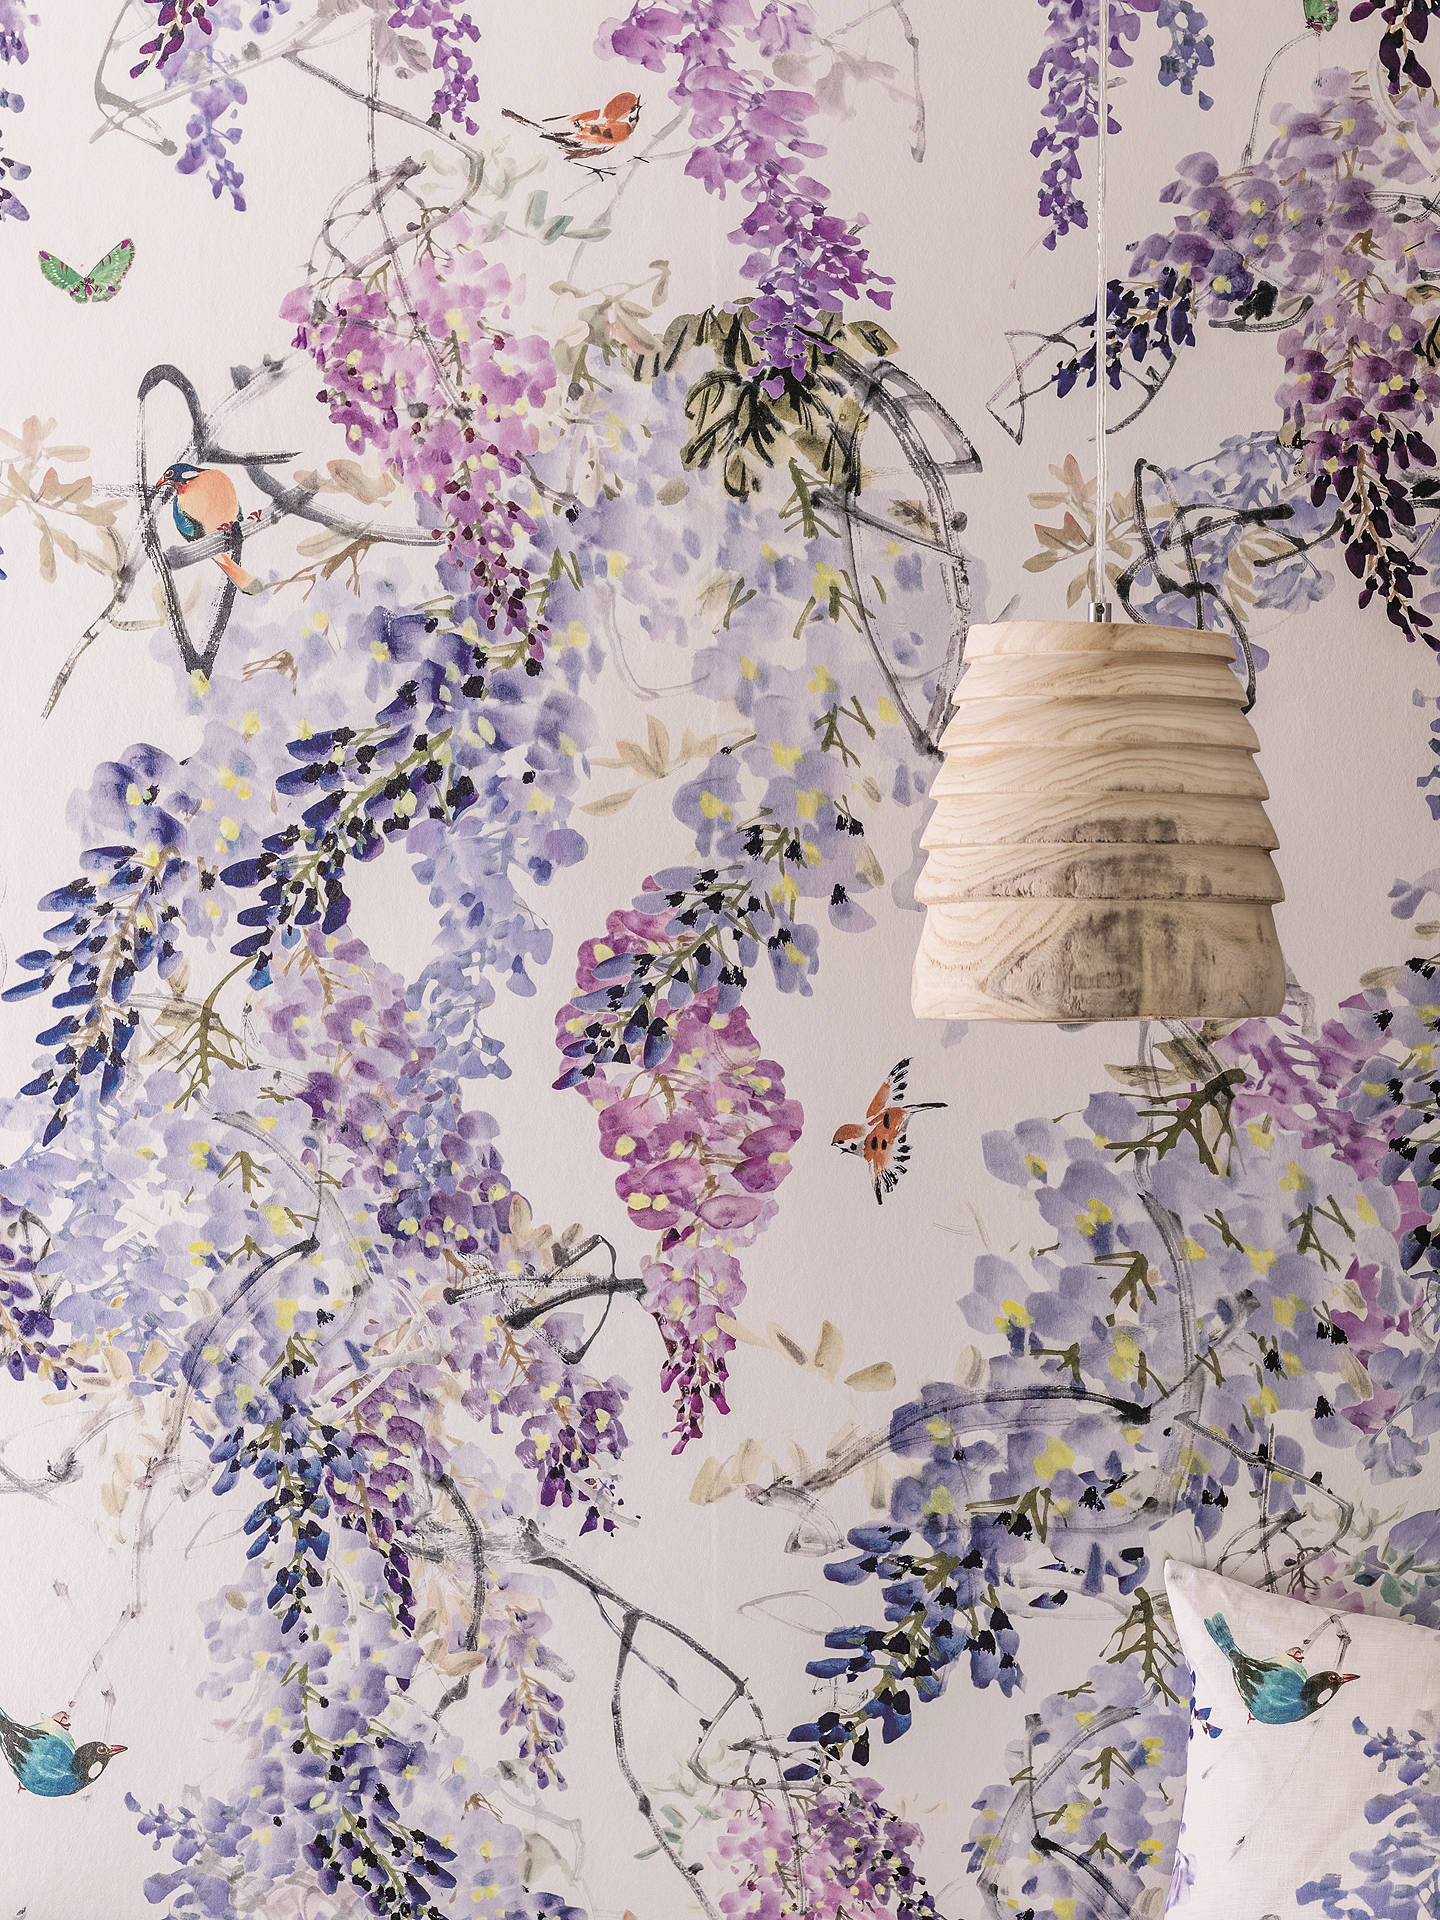 Buy Sanderson Waterperry Wisteria Falls Wallpaper Lilac 216296, Panel A Online at johnlewis.com